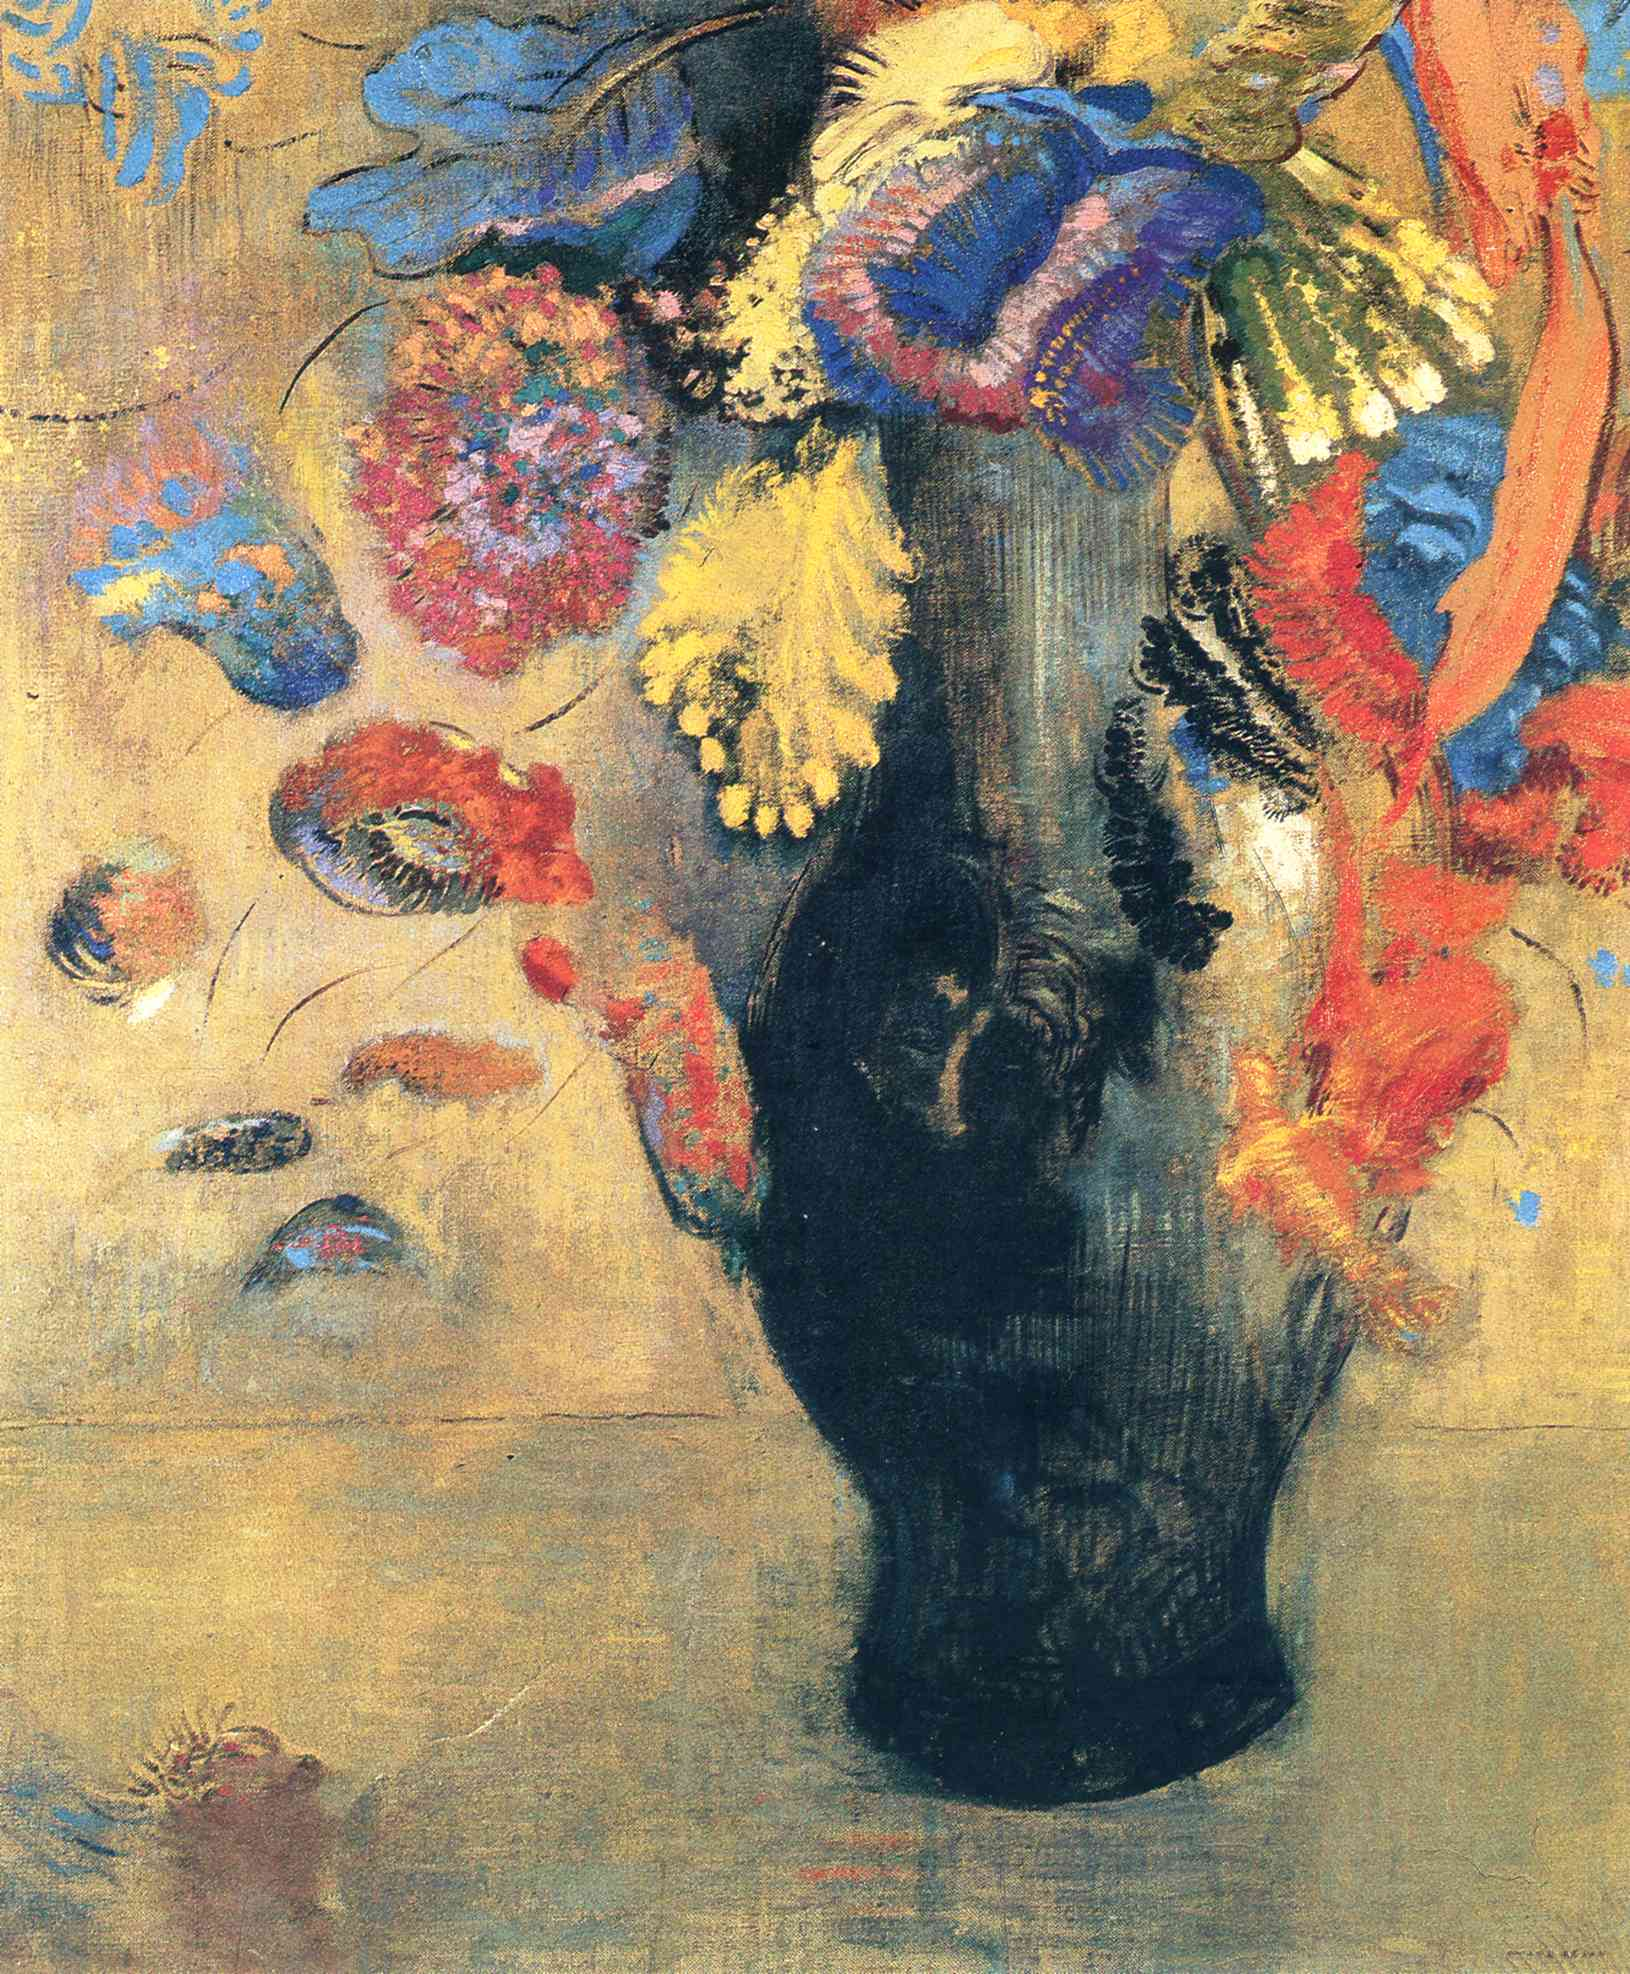 Blue, Orange and Yellow Flowers in a Vase, by Odilon Redon, 1903